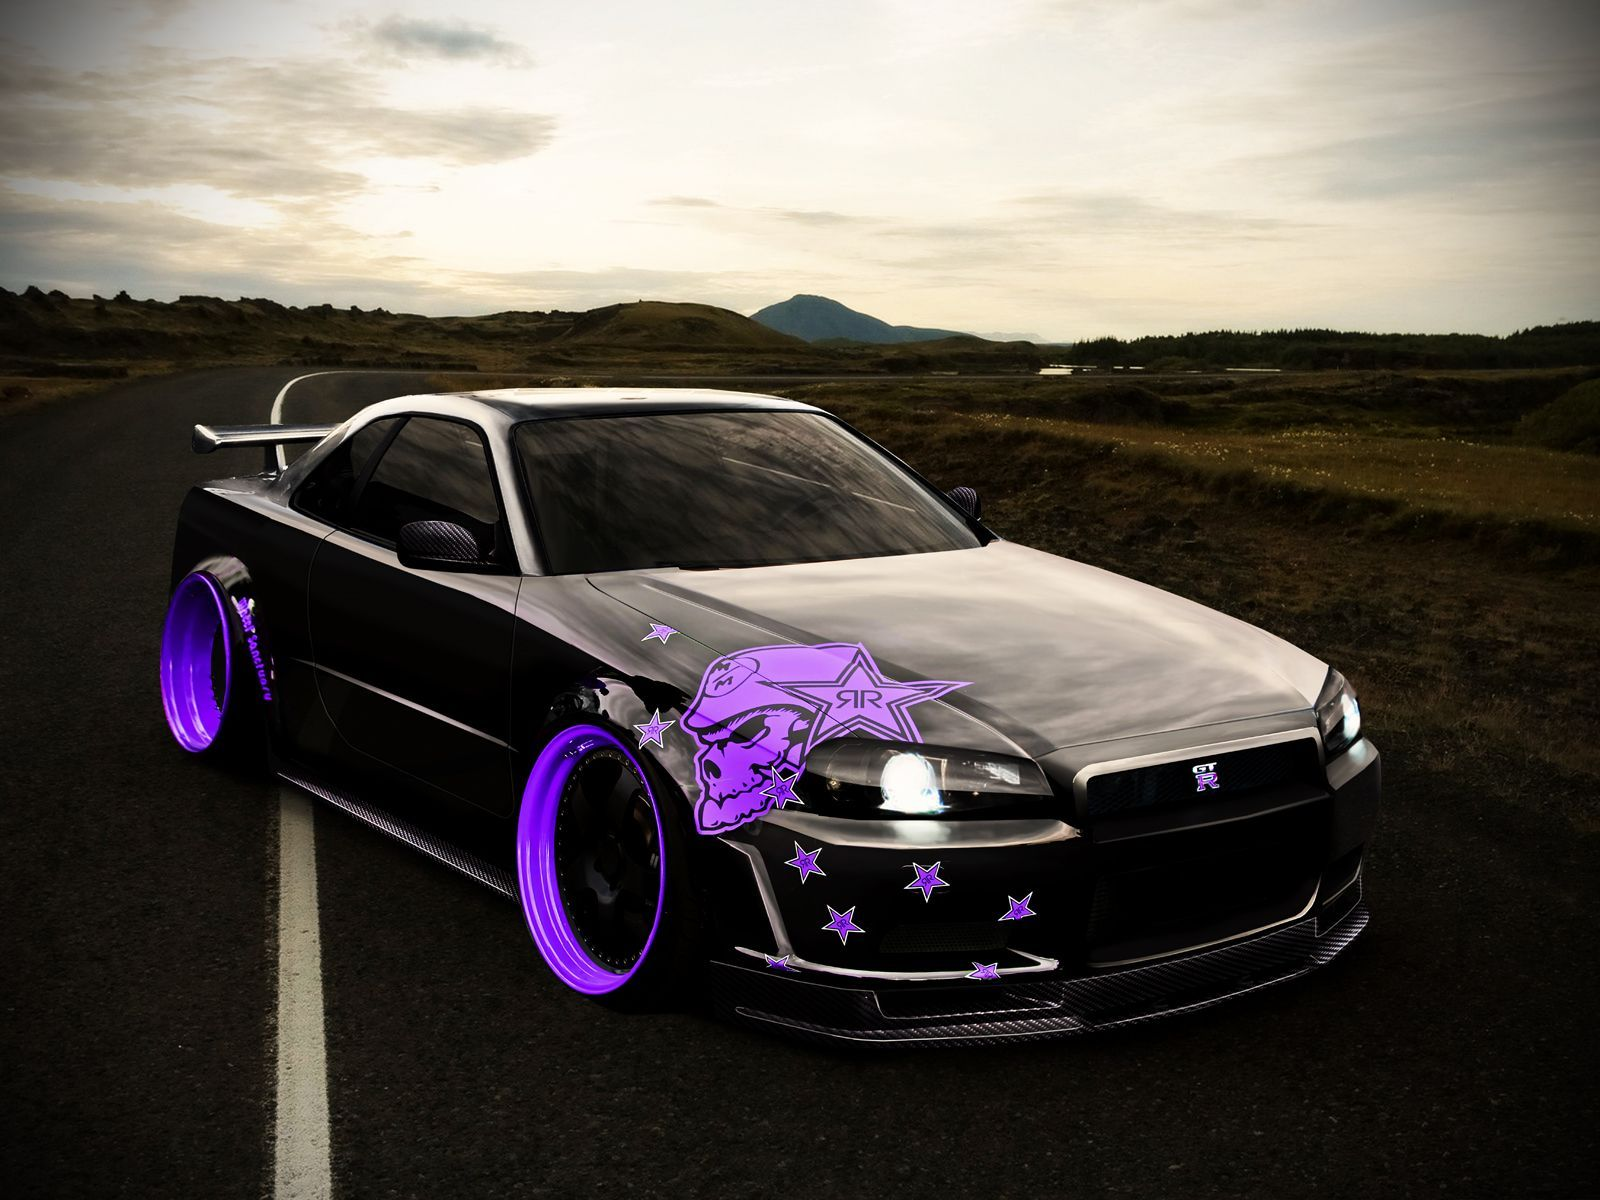 Nissan skyline gtr i really don t like the skull design but the royal purple wheels are exactly what i want